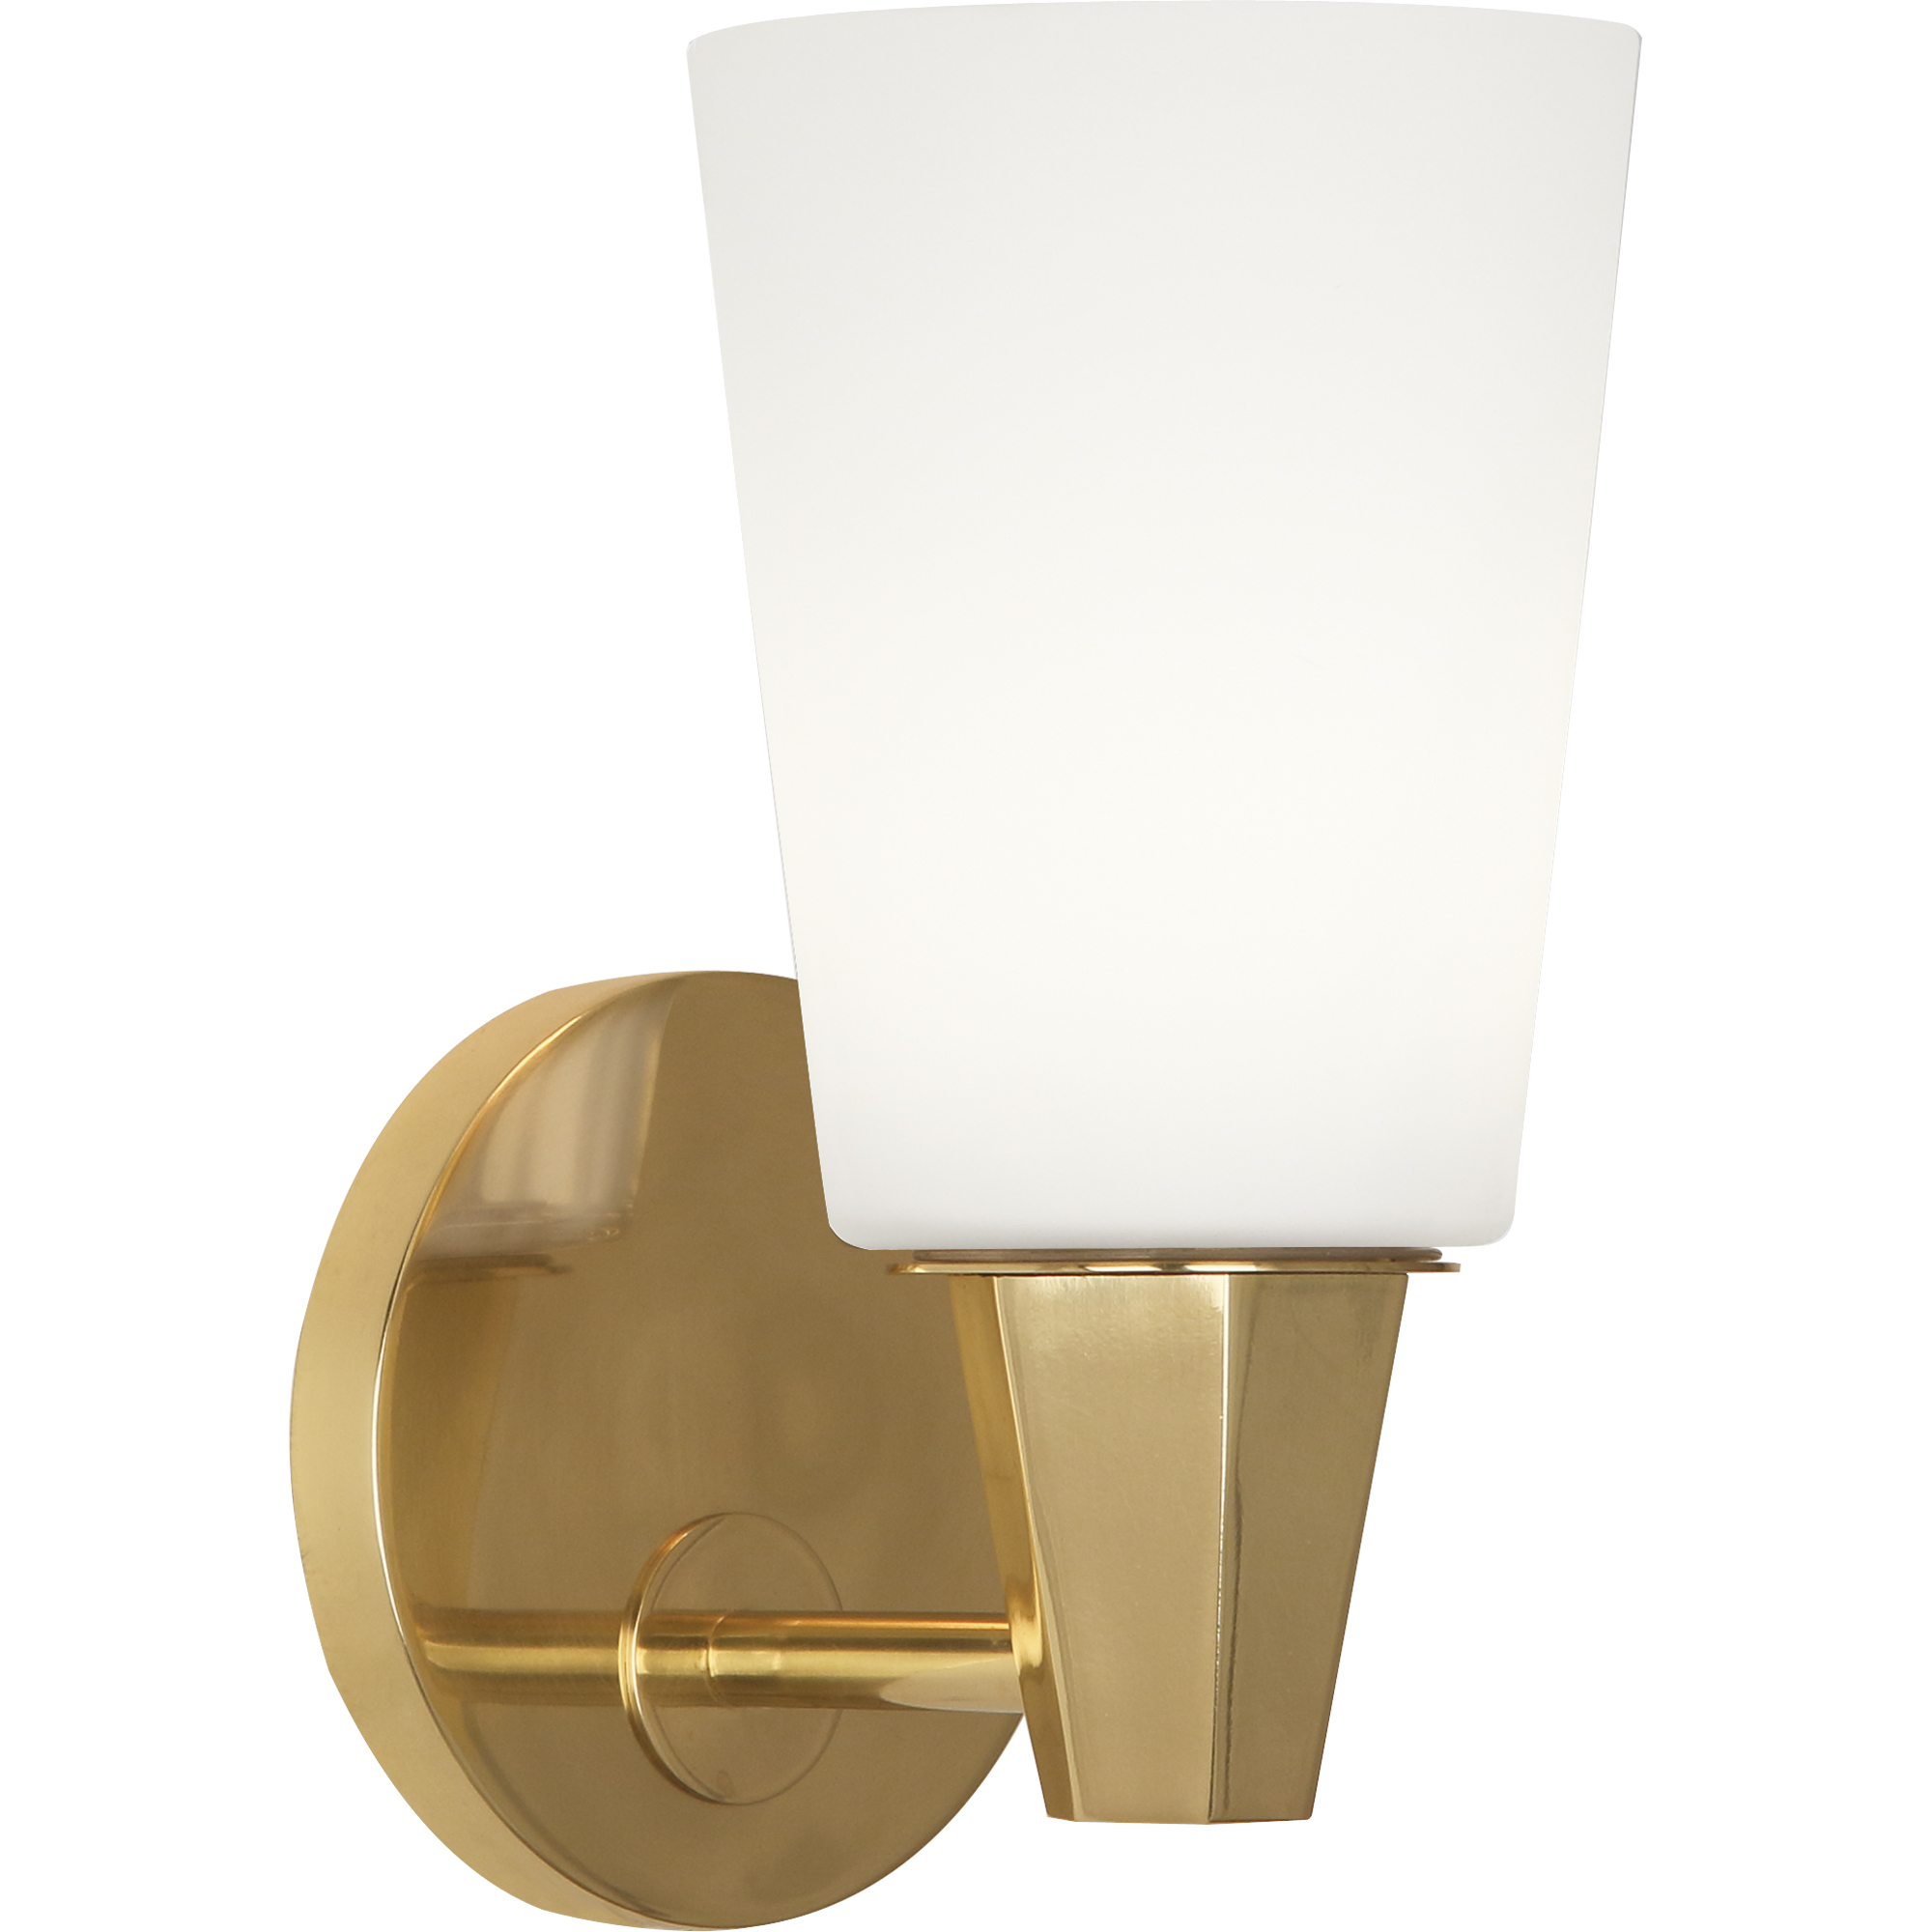 Wheatley Wall Sconce Style #254F